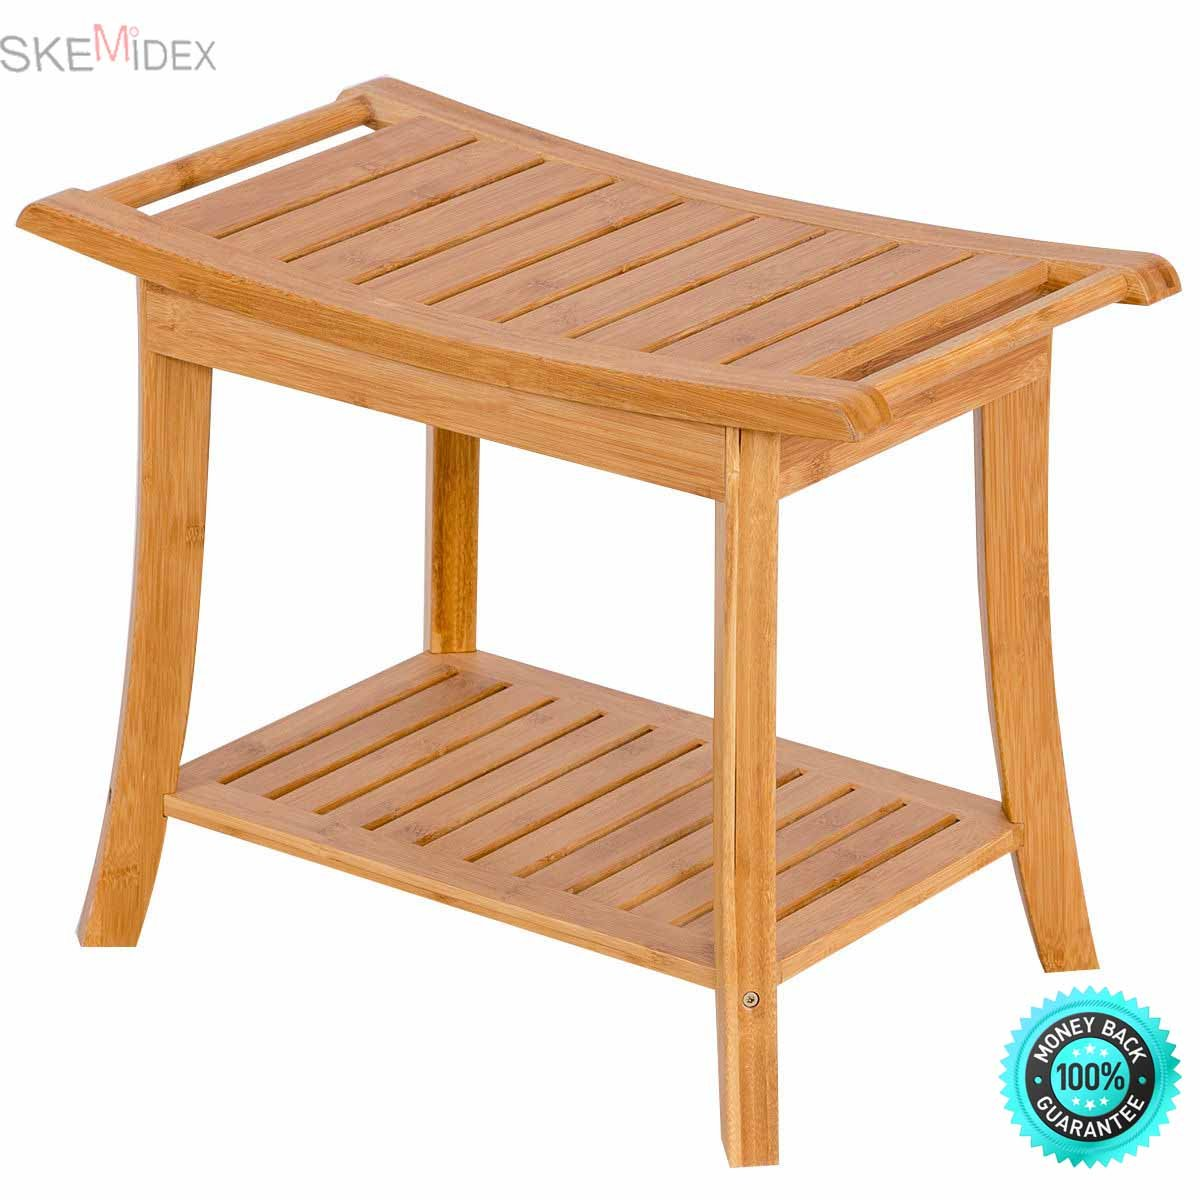 SKEMiDEX--- Bamboo Shower Seat Bench Bathroom Spa Bath Organizer Stool w/Storage Racks Shelf The bathroom stool is practical and attractive.Chic and modern design provides you with convenient .